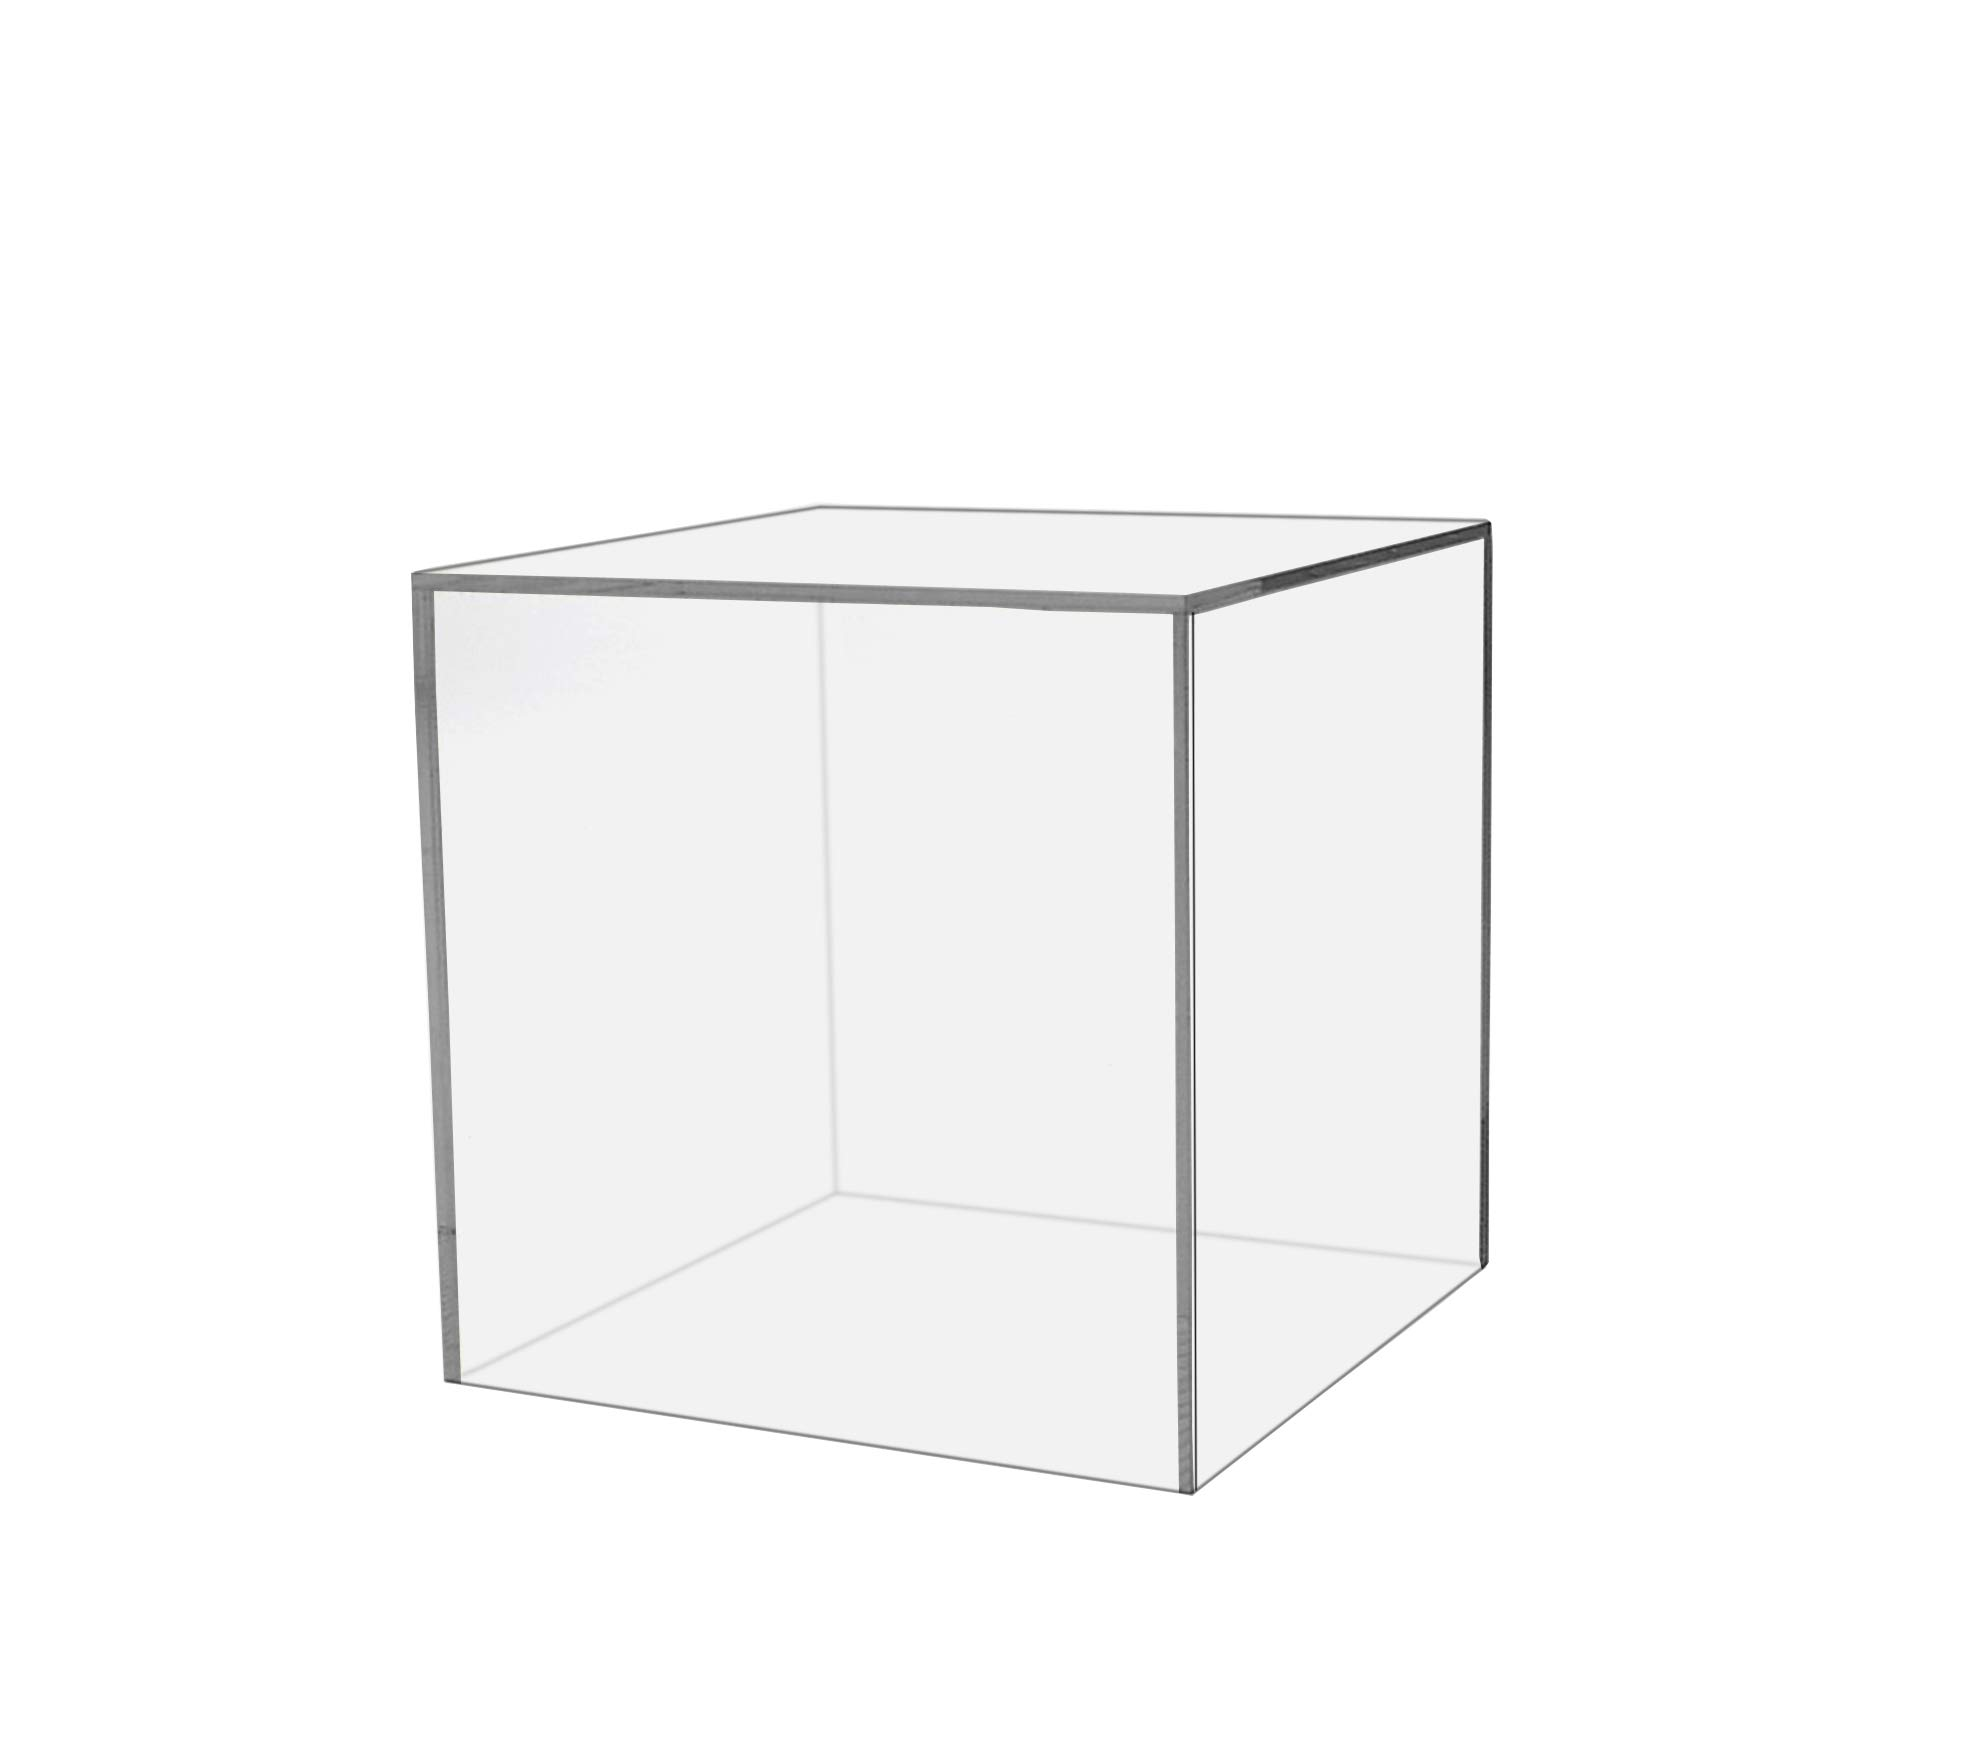 Marketing Holders Large Acrylic Display Box Cube Toys Trinkets Collectible Items Safety Dust Cover Acrylic 5 Sided Show Case Art Easel Pedestal Display (5, 10''w x 10''h) by Marketing Holders (Image #1)